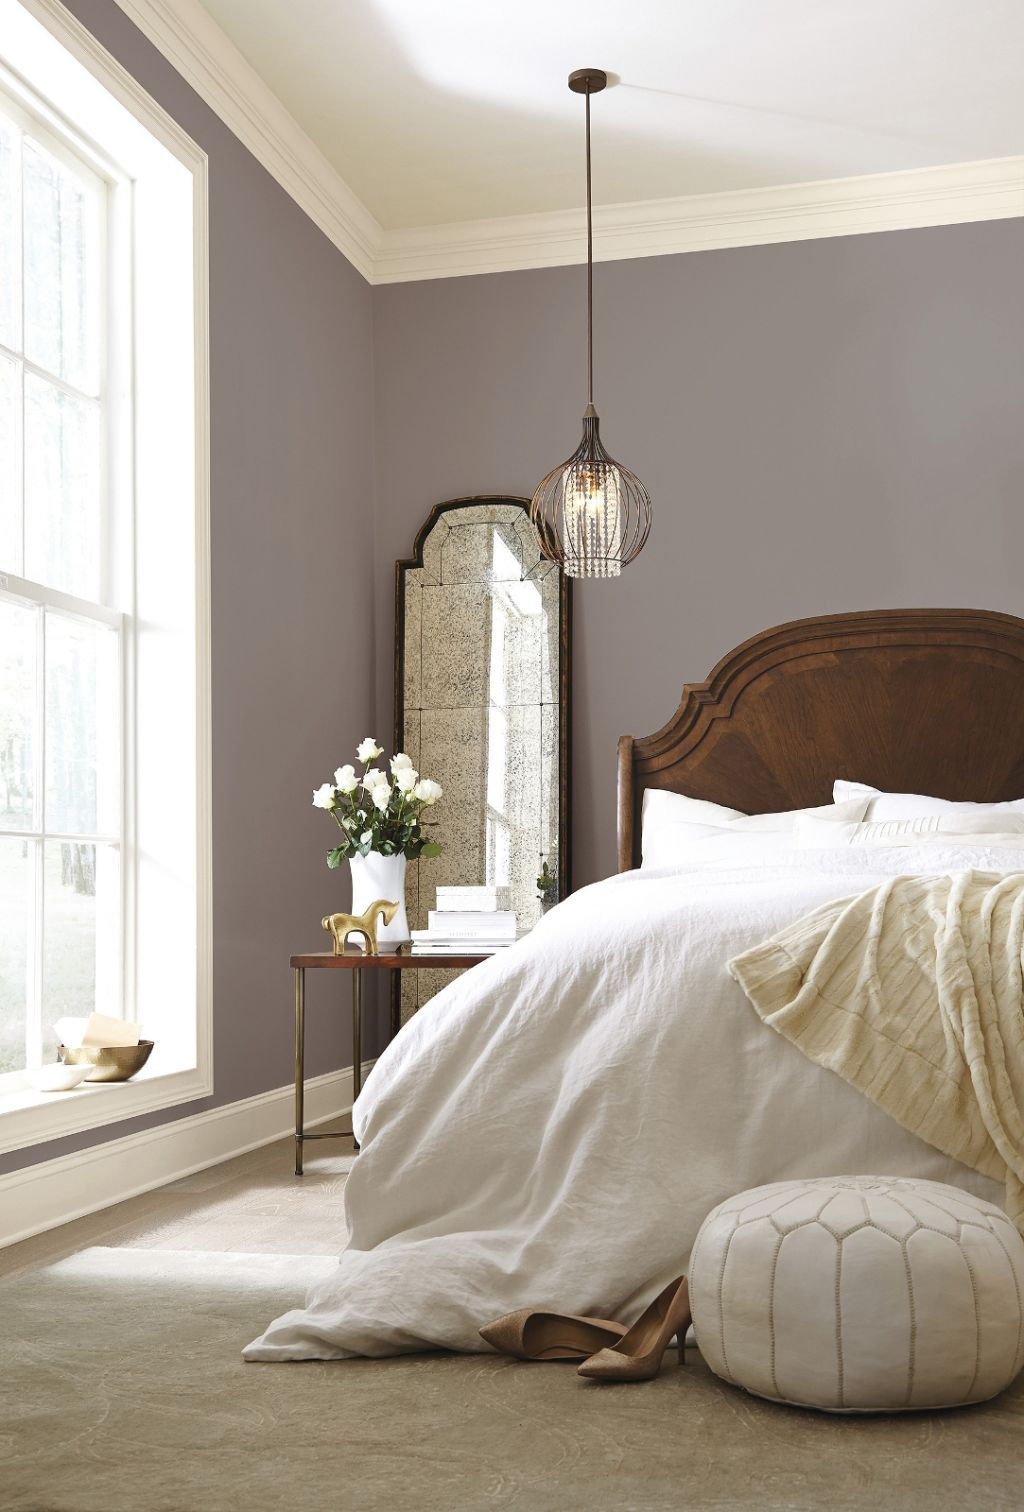 Sherwin-Williams Just Announced the Color of the Year ...